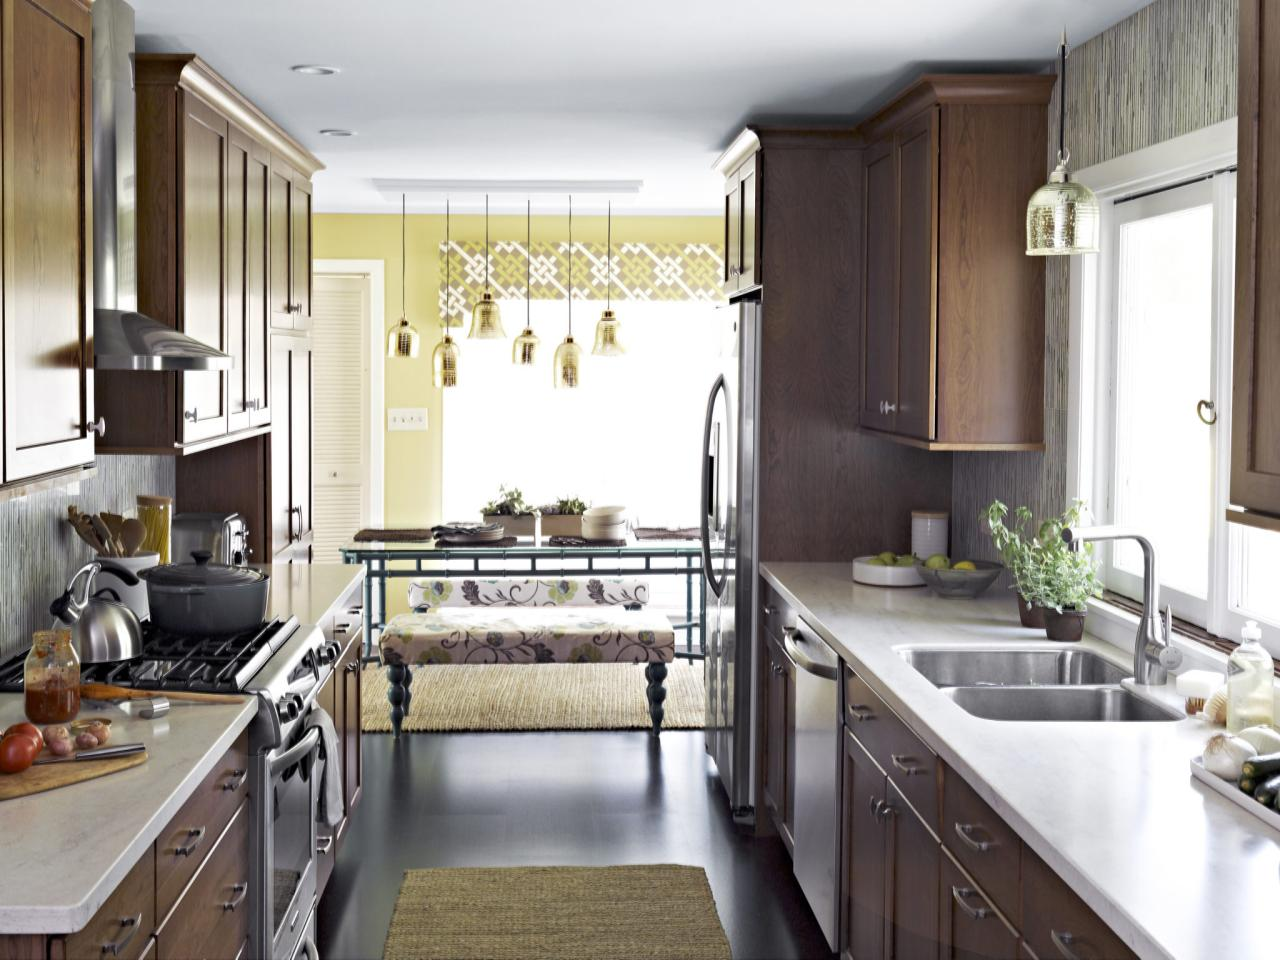 Small kitchen decorating ideas pictures tips from hgtv for My kitchen design style